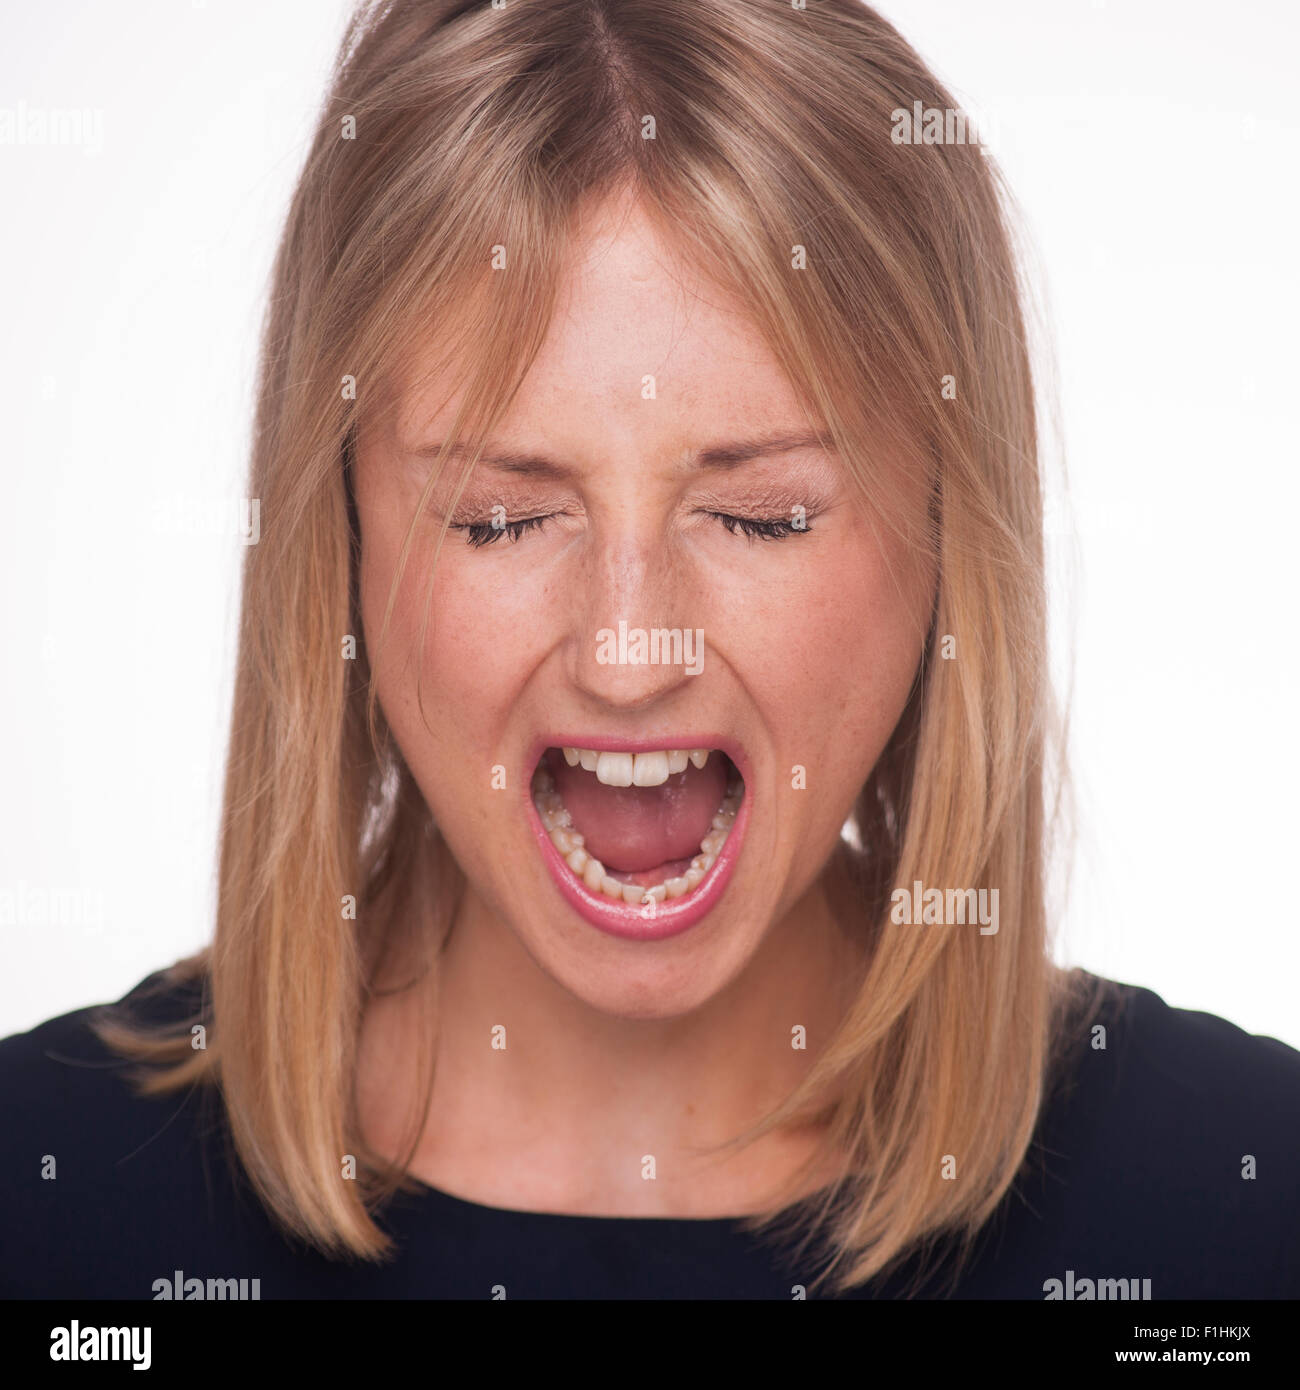 Blonde woman yelling with her eyes closed. - Stock Image